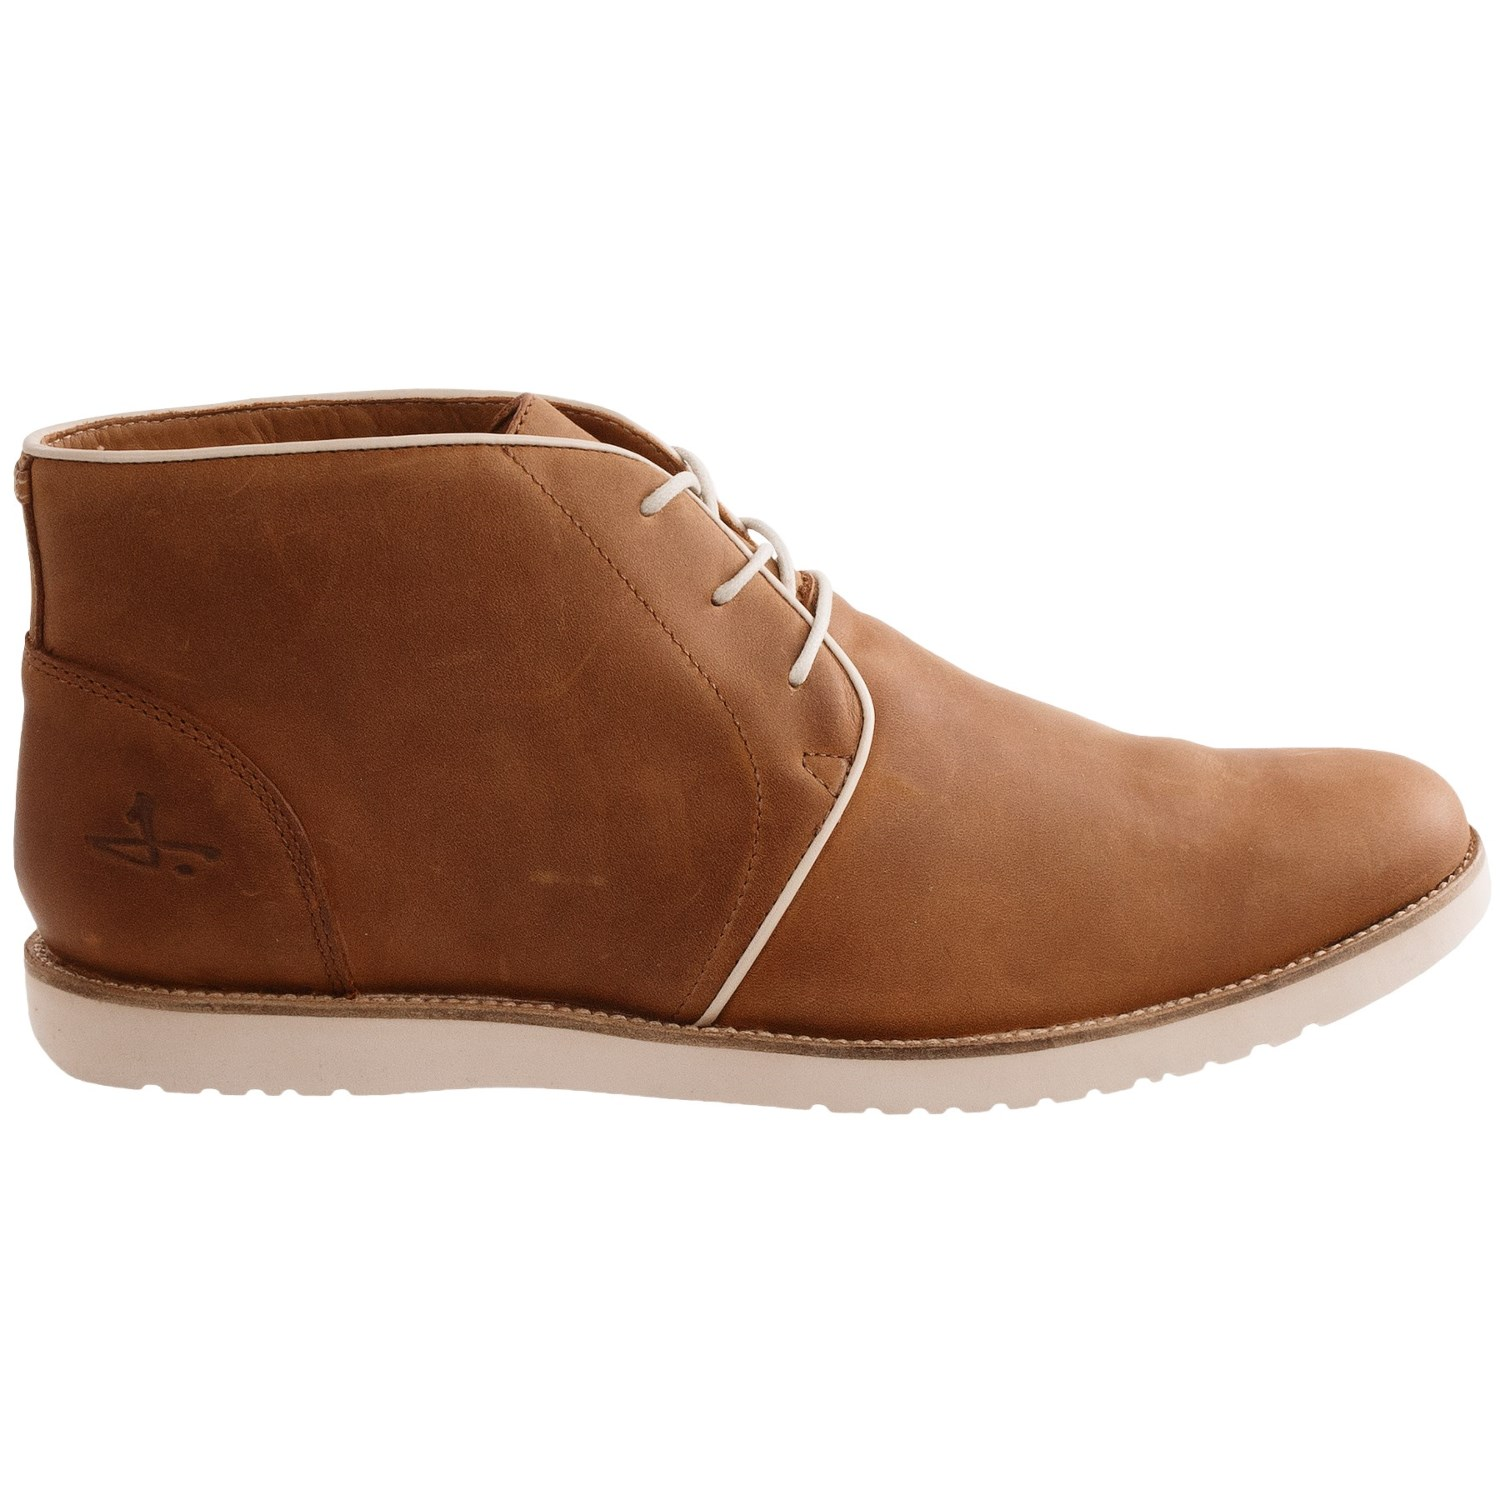 J Shoes Spinner Chukka Boots (For Men) 8416T - Save 67%